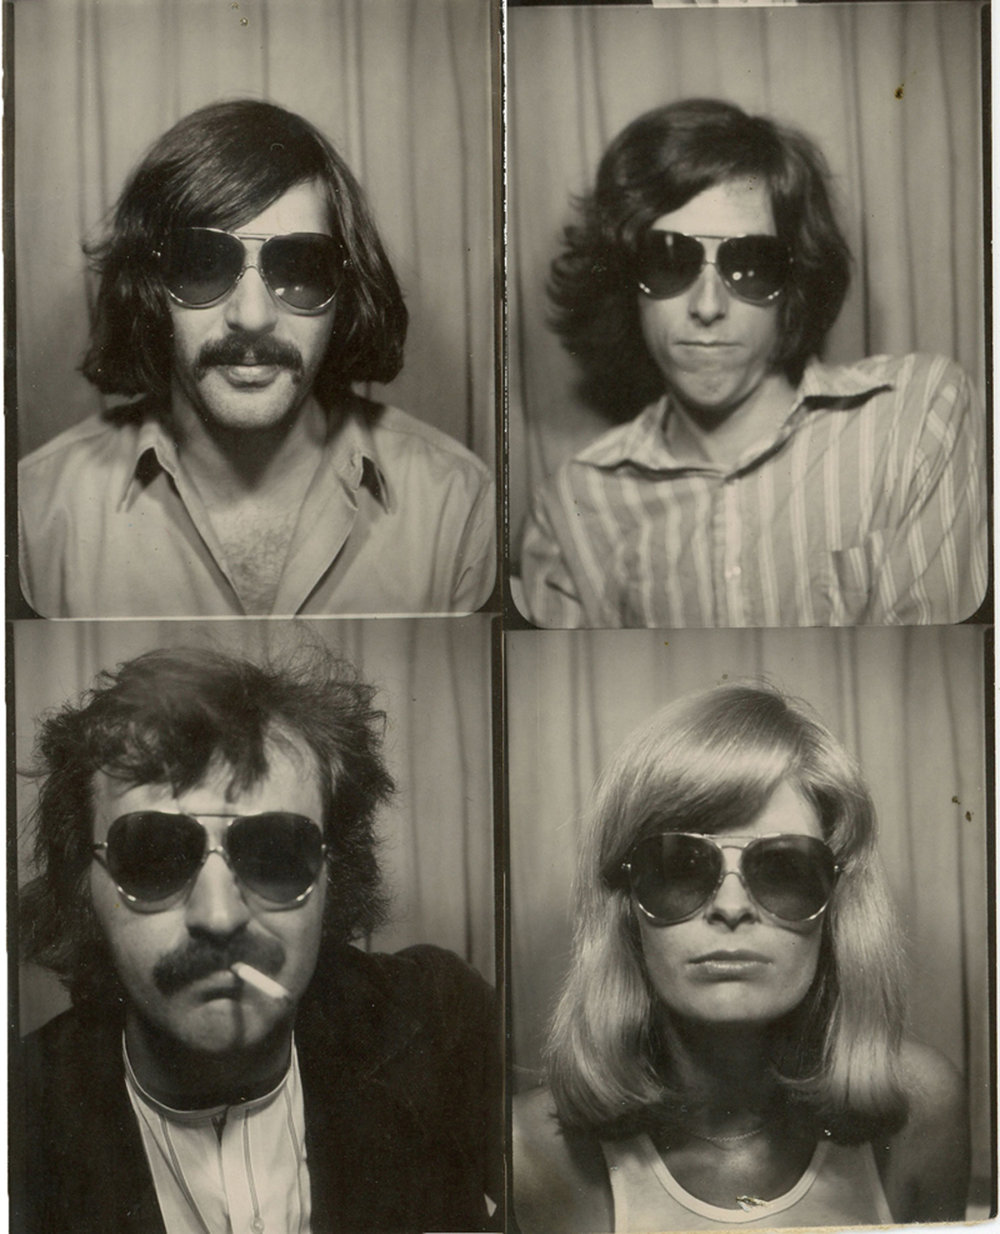 Clockwise: Marc, Mike Malloy, Carla and Mike Shannon, c. 1971. Taken in our favorite photobooth on Mott Street.